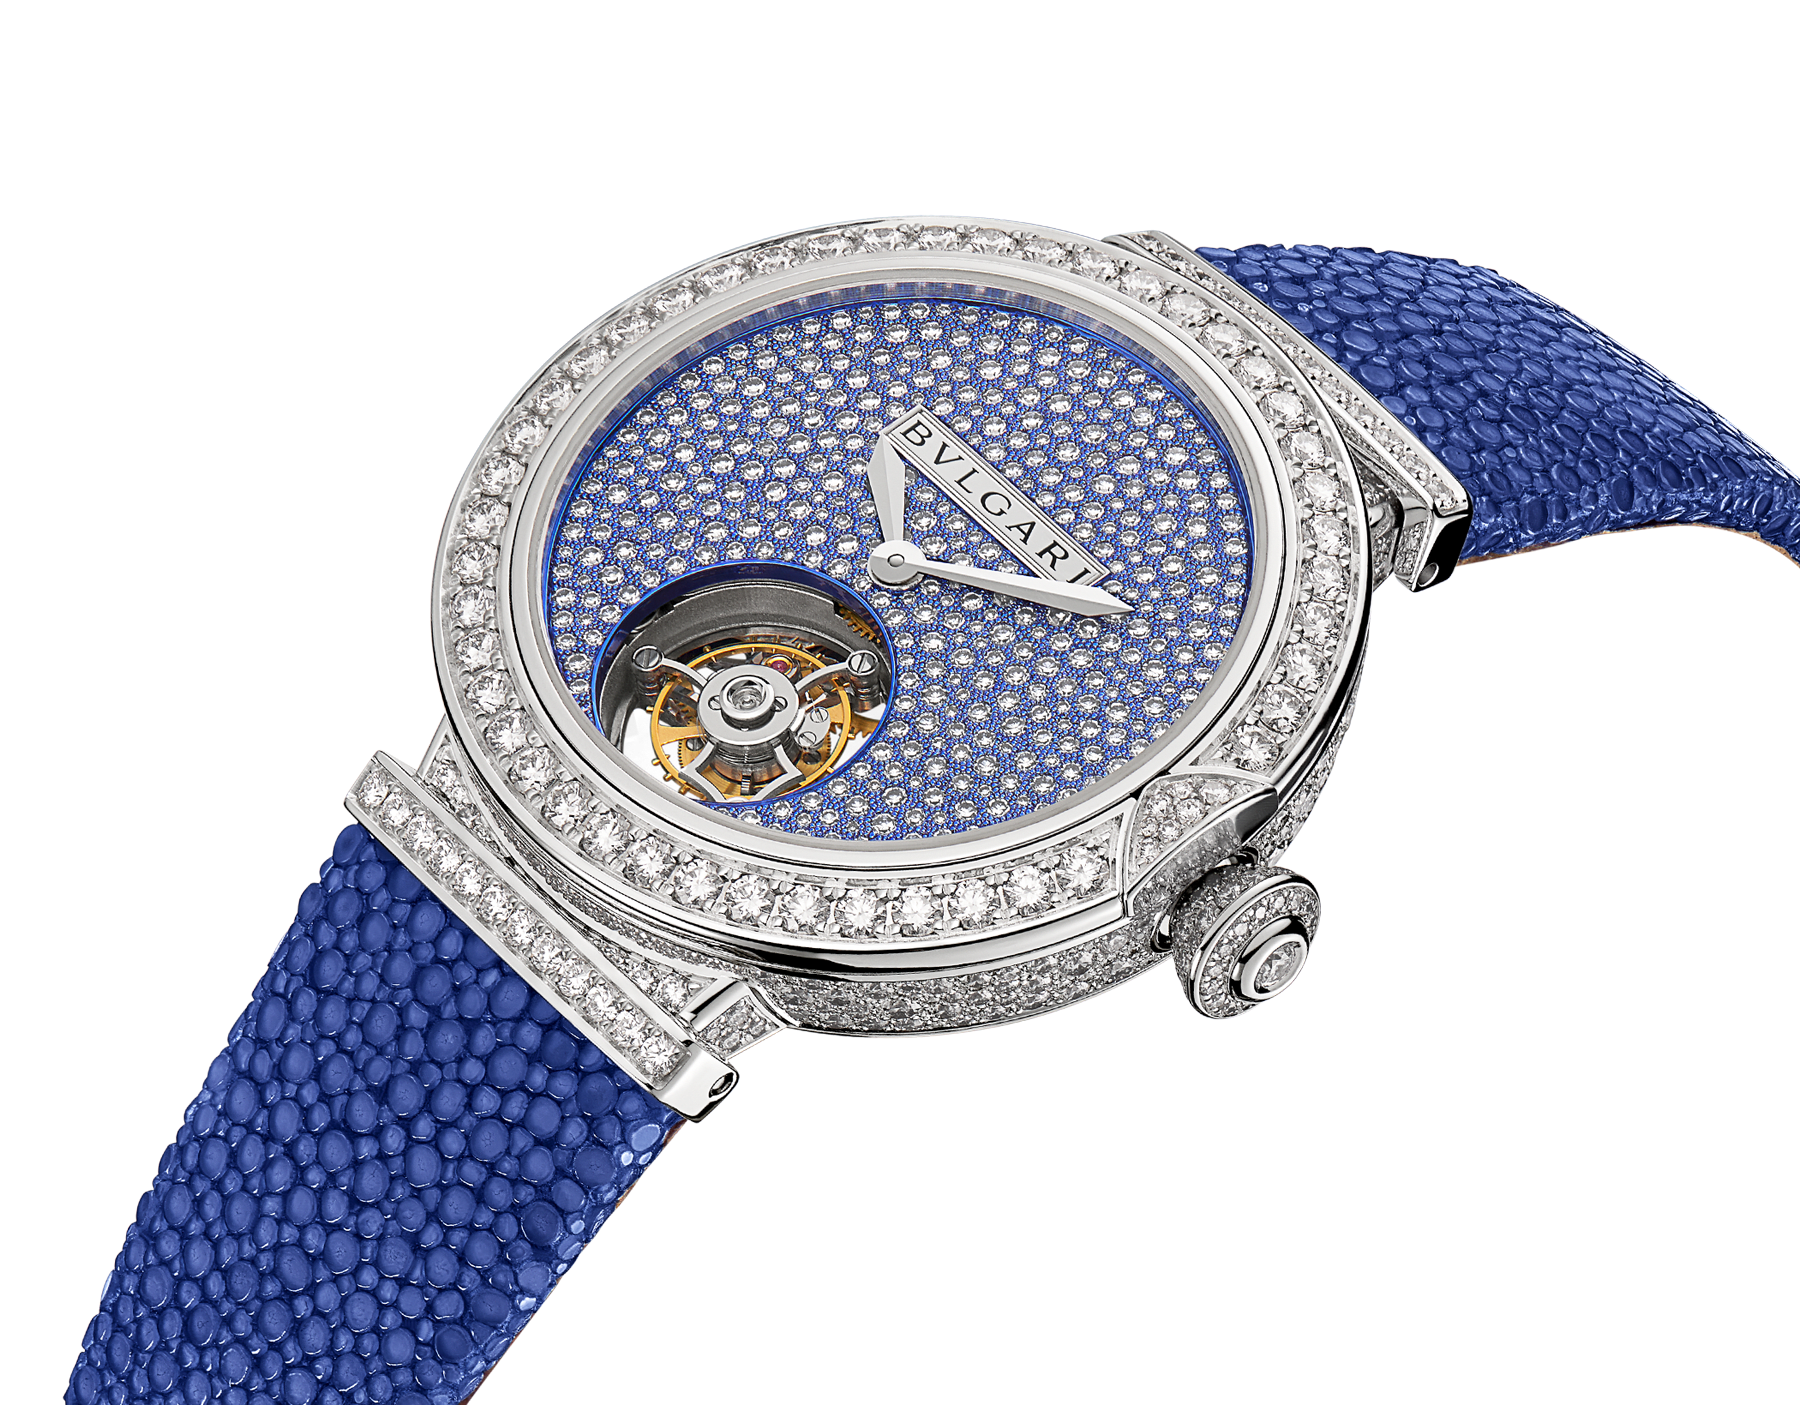 LVCEA Tourbillon Limited Edition watch with mechanical manufacture movement, automatic winding, see-through tourbillon, 18 kt white gold case set with round brilliant-cut diamonds, full-pavé dial with round brilliant-cut diamonds and blue colour finish, and blue galuchat bracelet 102881 image 2